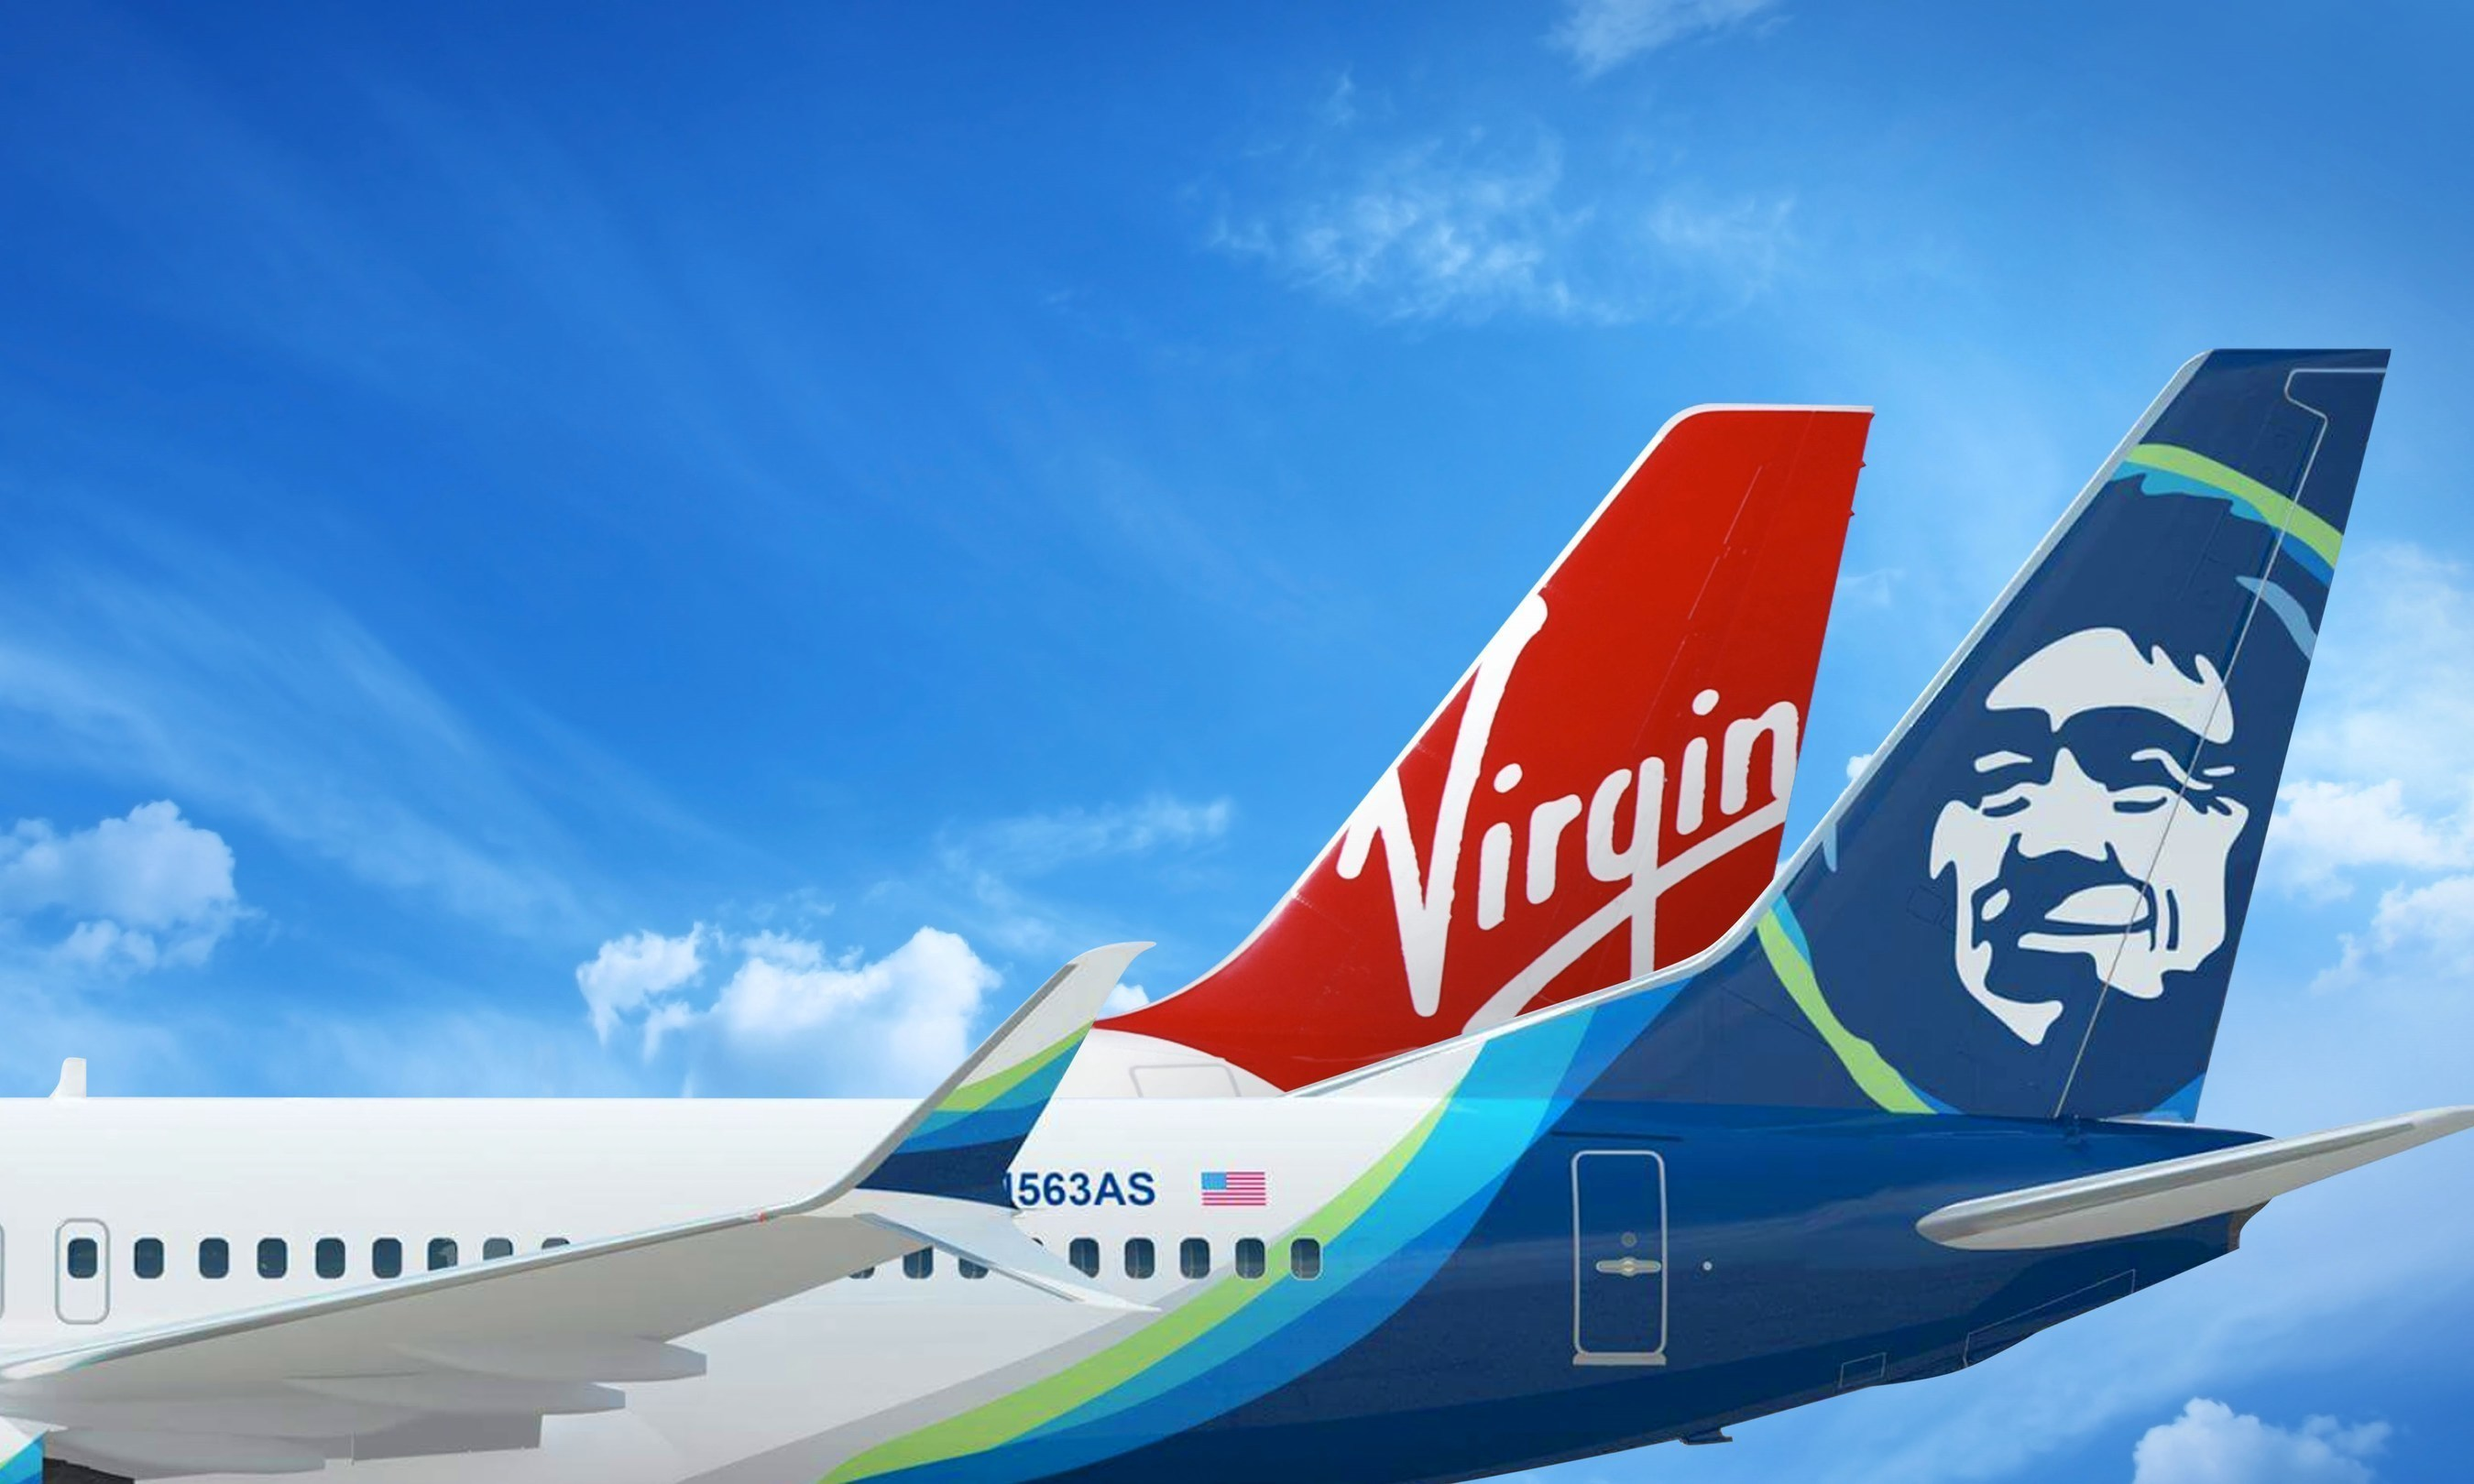 alaska airlines and virgin america today announced their intention to merge creating the premier west